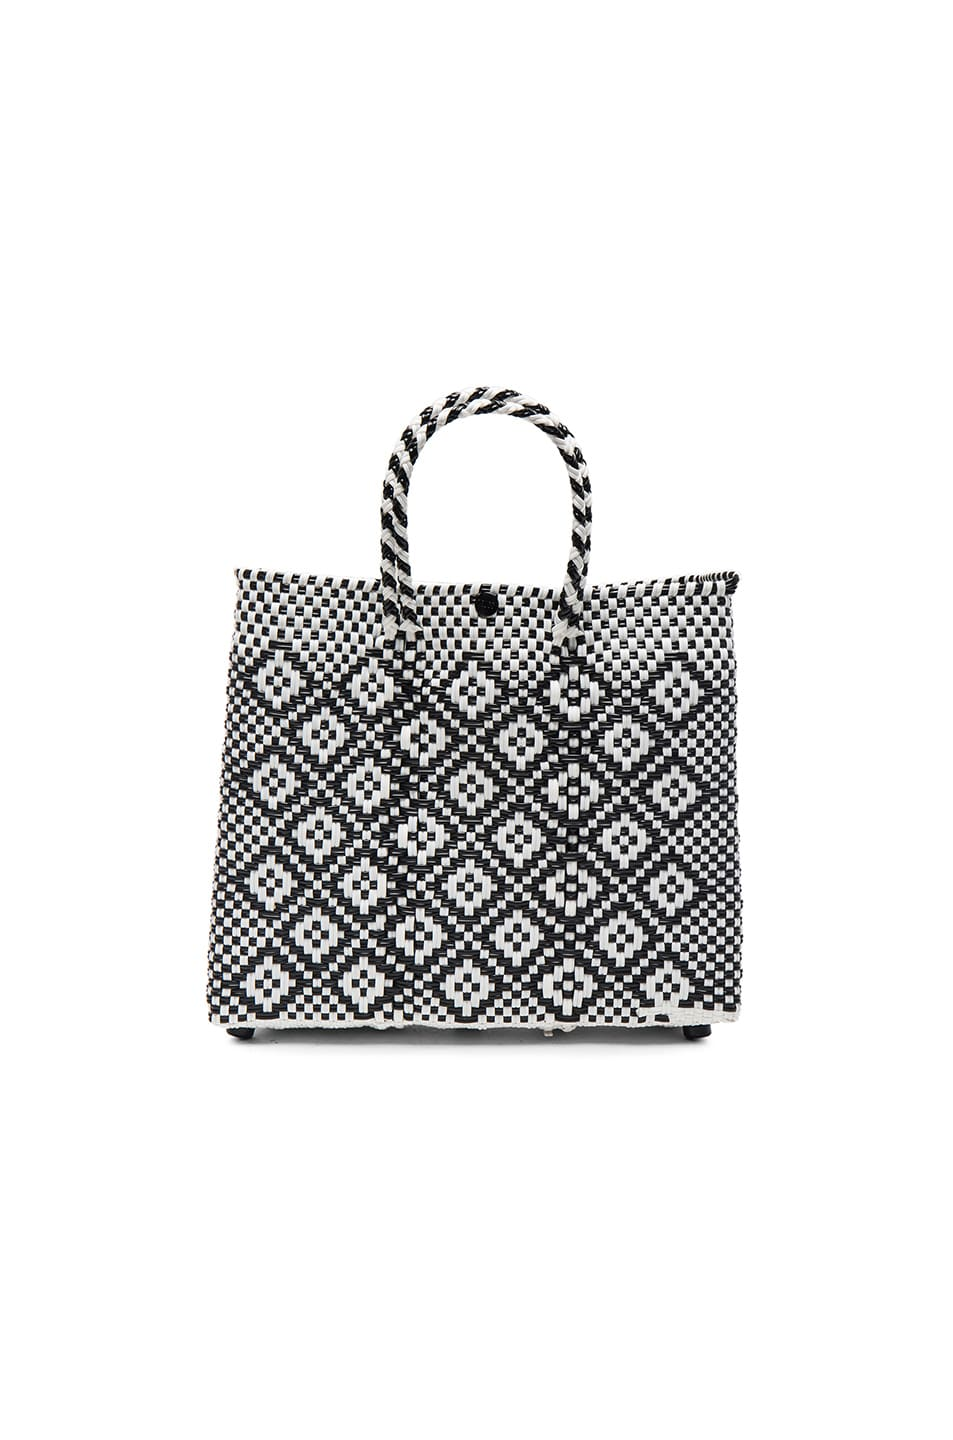 Image 1 of Truss Small Crossbody Tote in Black & White